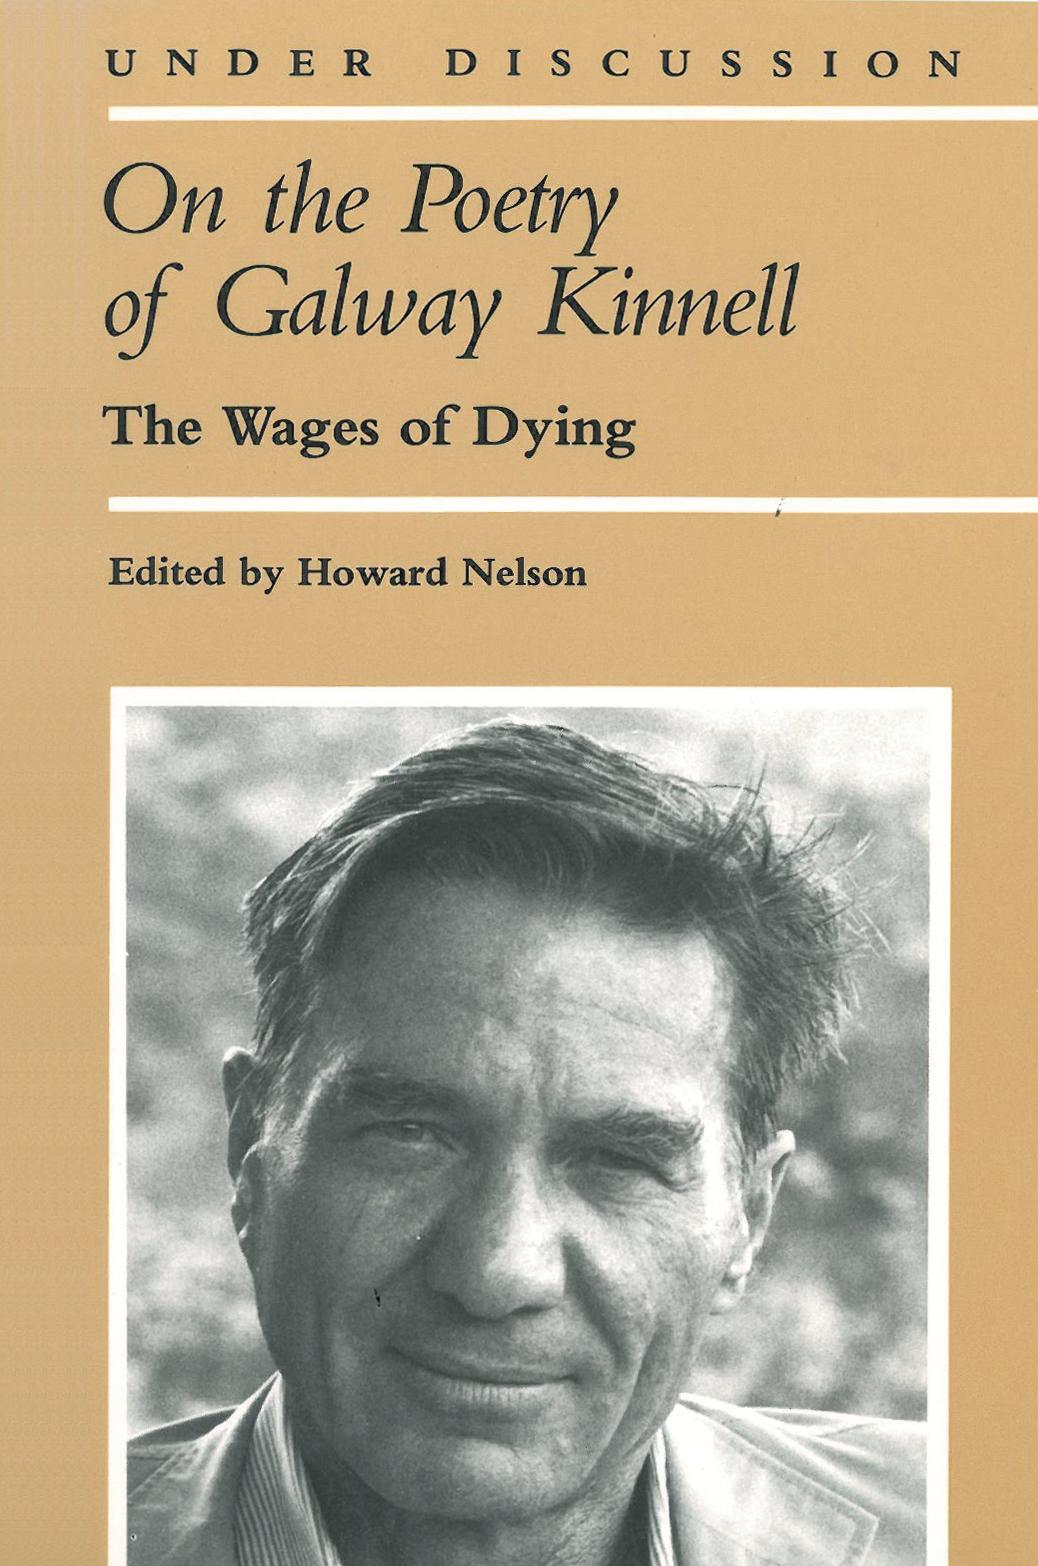 On the Poetry of Galway Kinnell